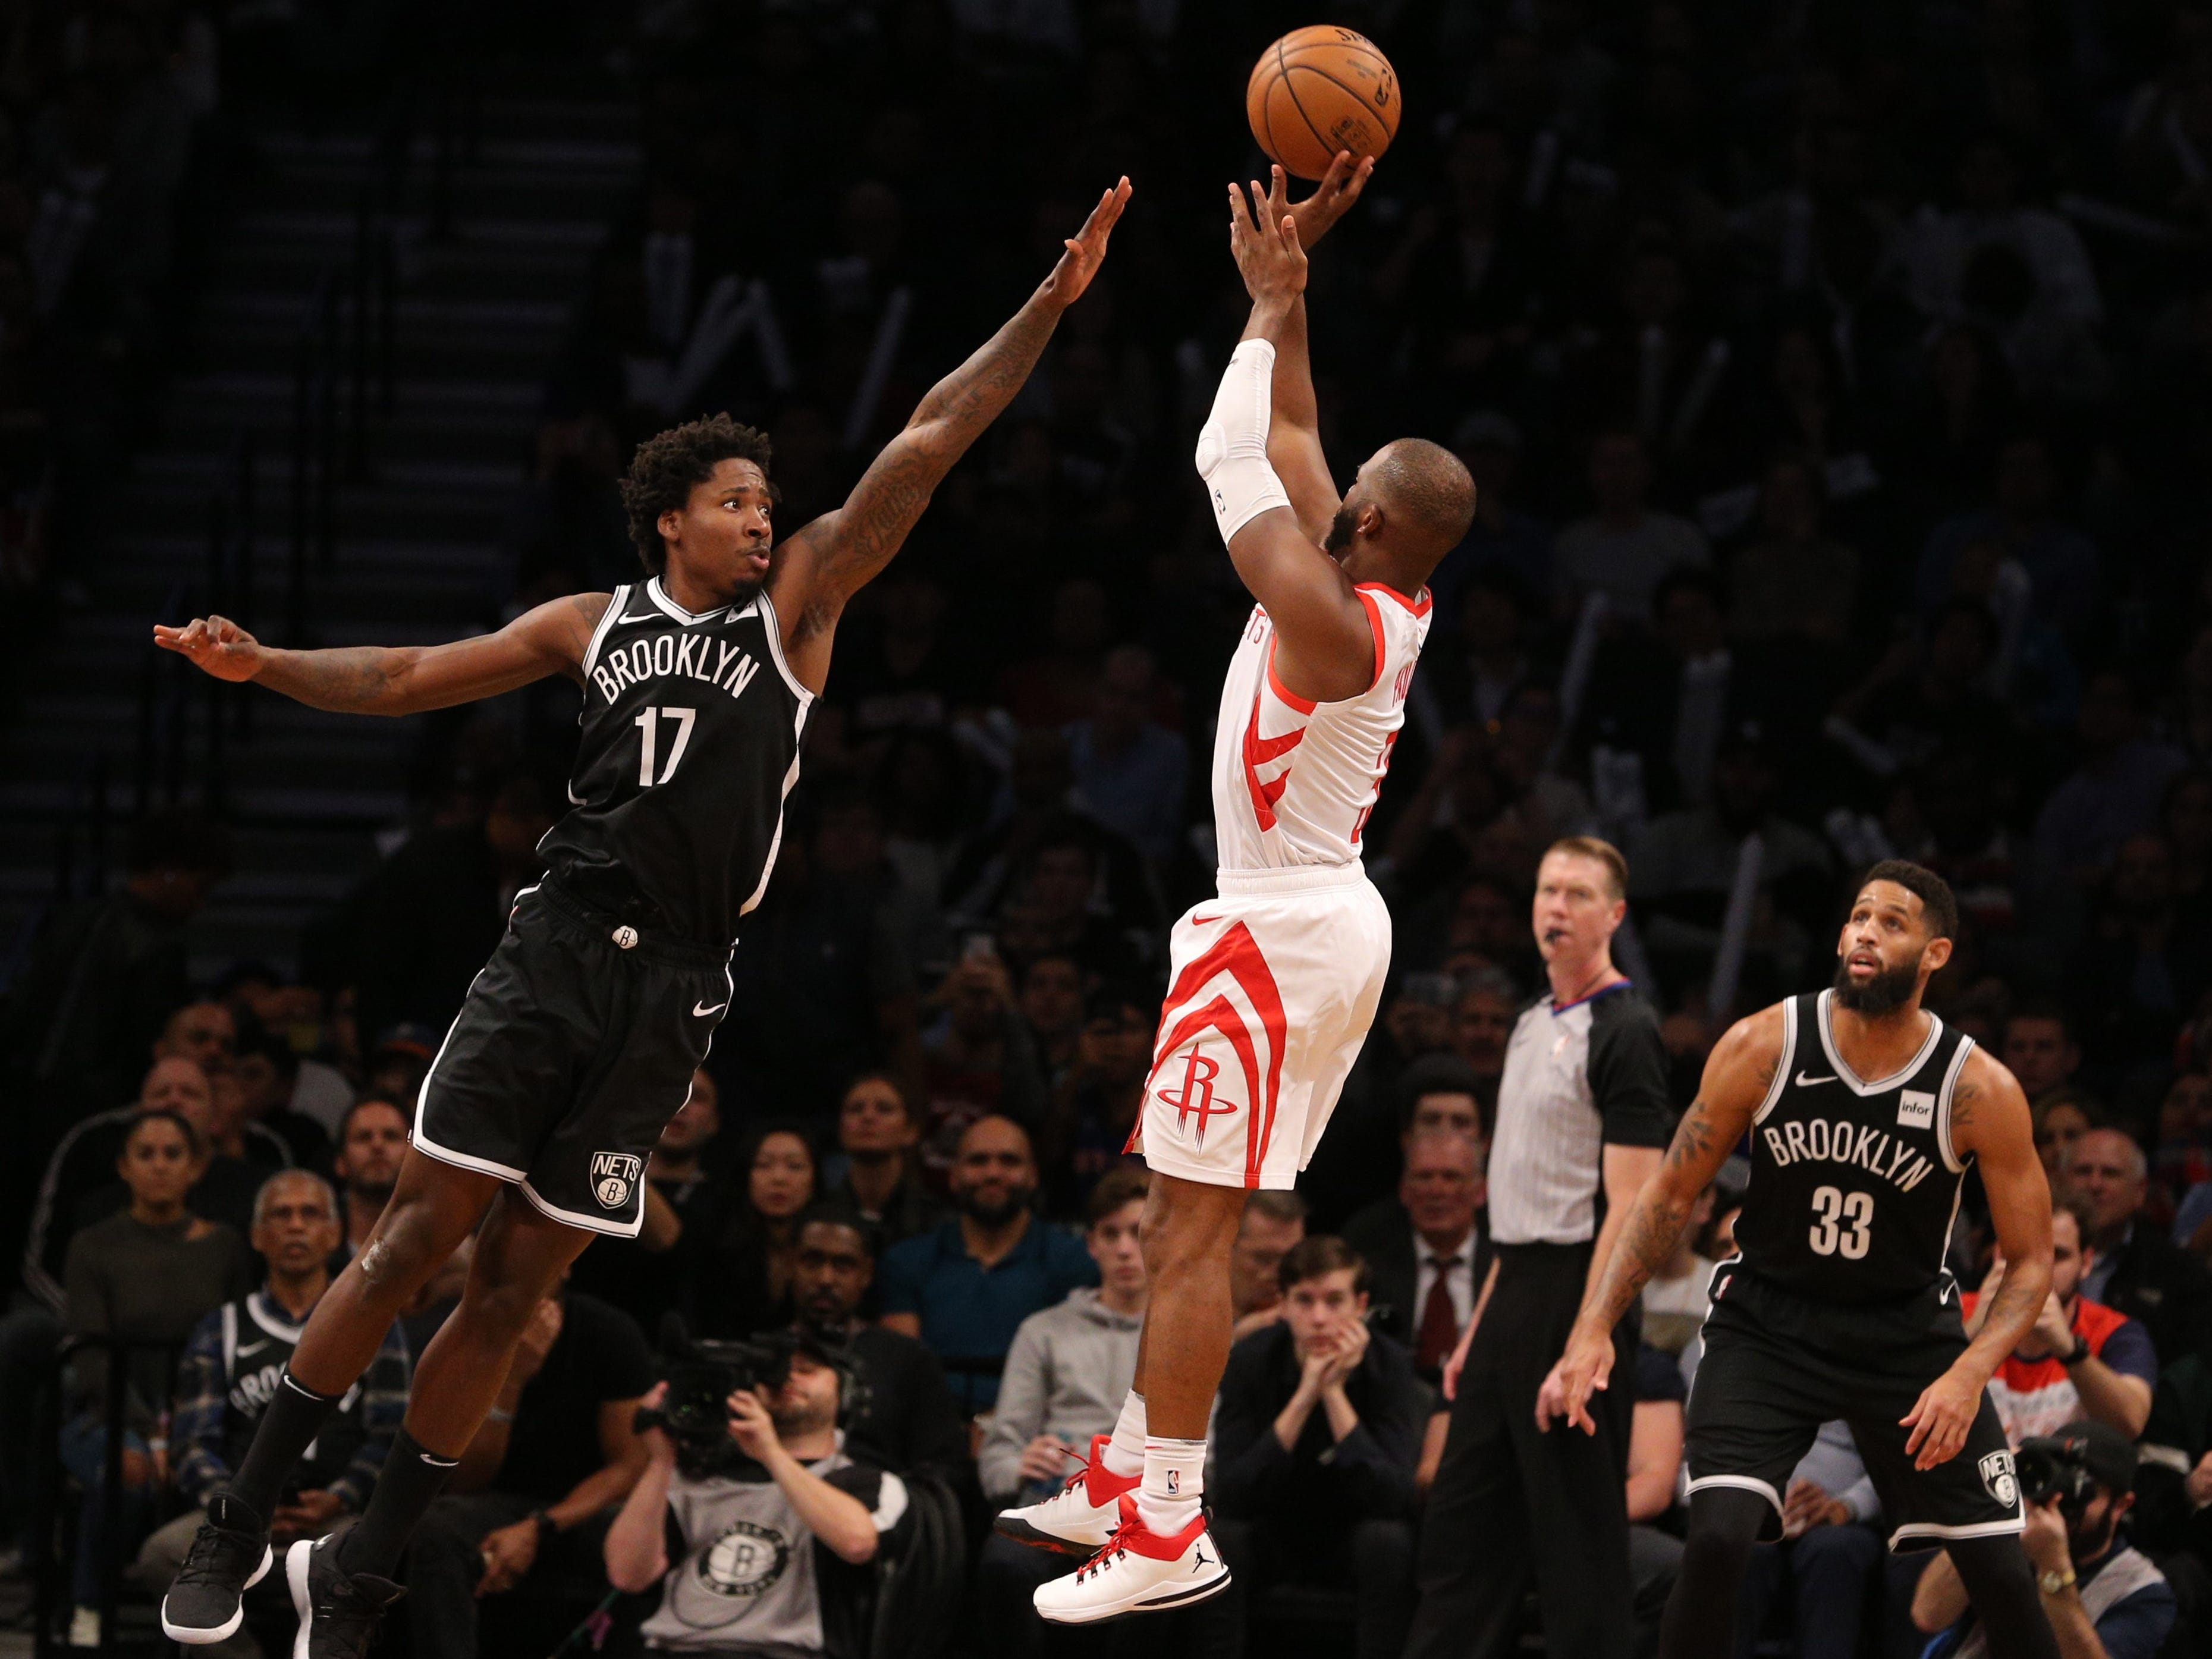 Nov. 2: Rockets guard Chris Paul (3) takes a fadeaway jumper over the out-stretched hand of Nets defender Ed Davis (17) during the second half in Brooklyn.